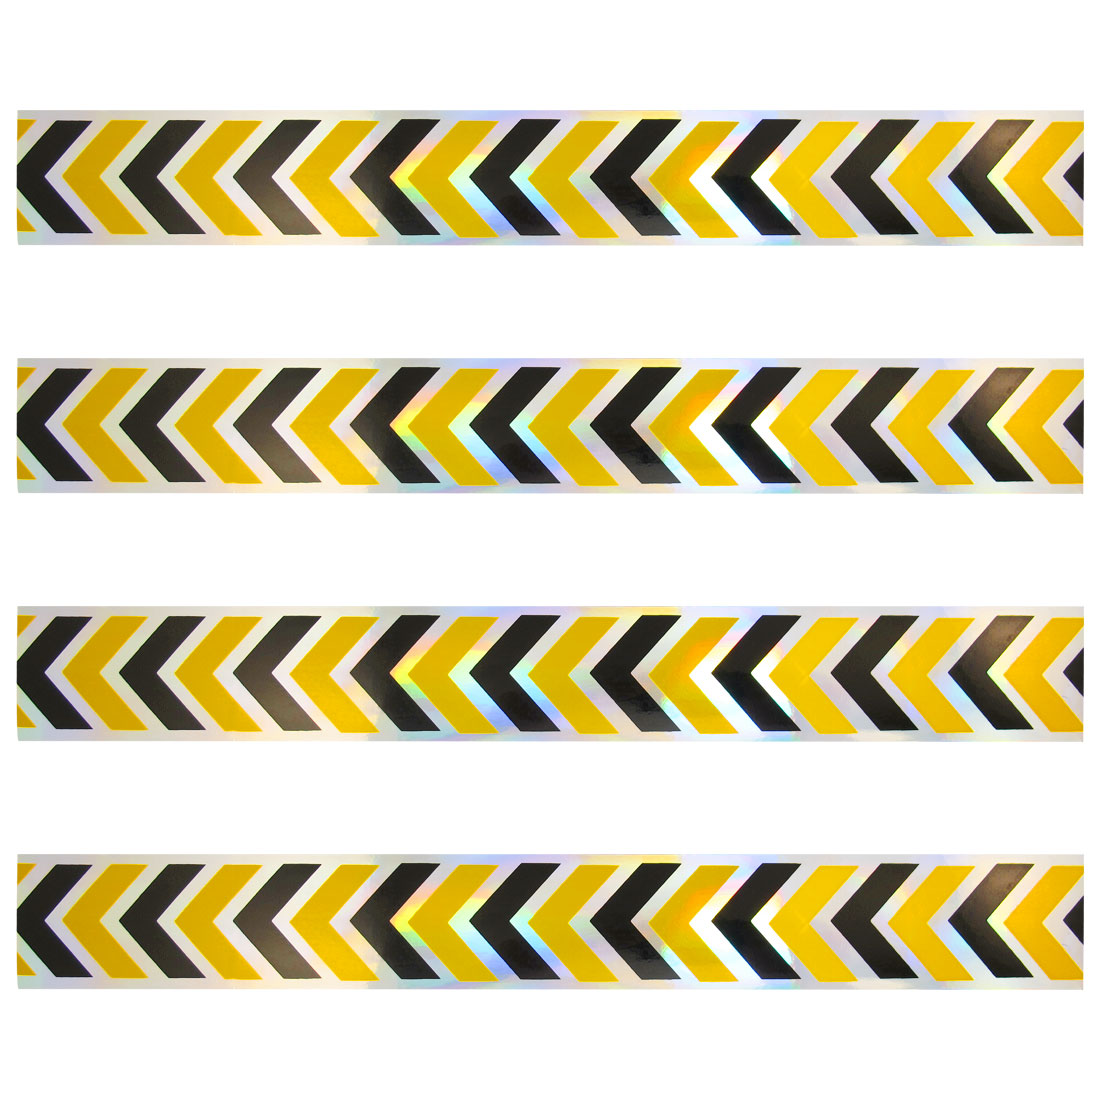 4 x Car Decoration Yellow Black Arrows Print Stickers